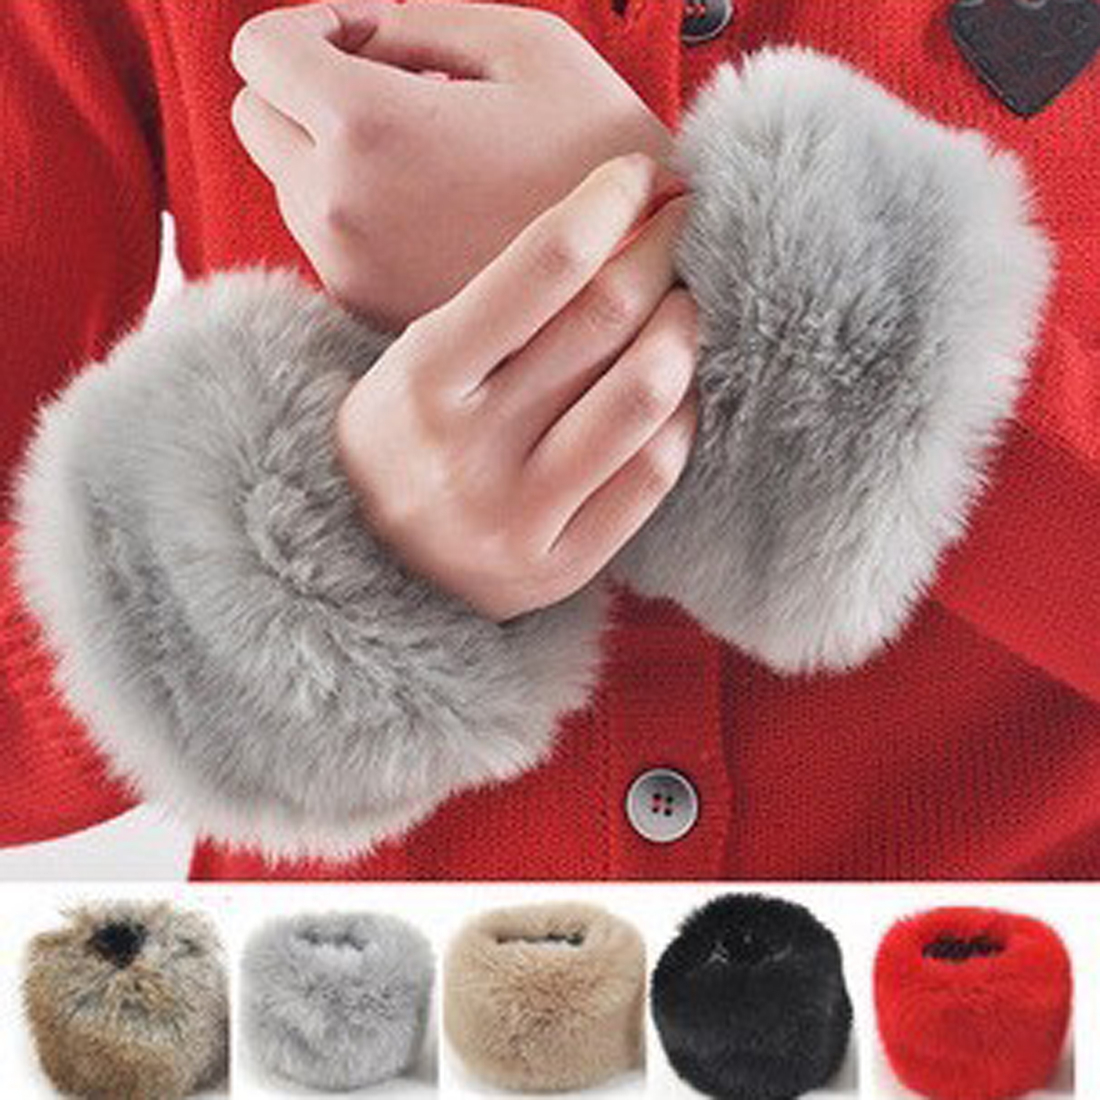 Women Warm Faux Fur Wrist Slap On Cuffs Winter Ladies Arm Warmer Fashion Warmer Cuffs Arm Warmers Wraps Plush Wrist Protector